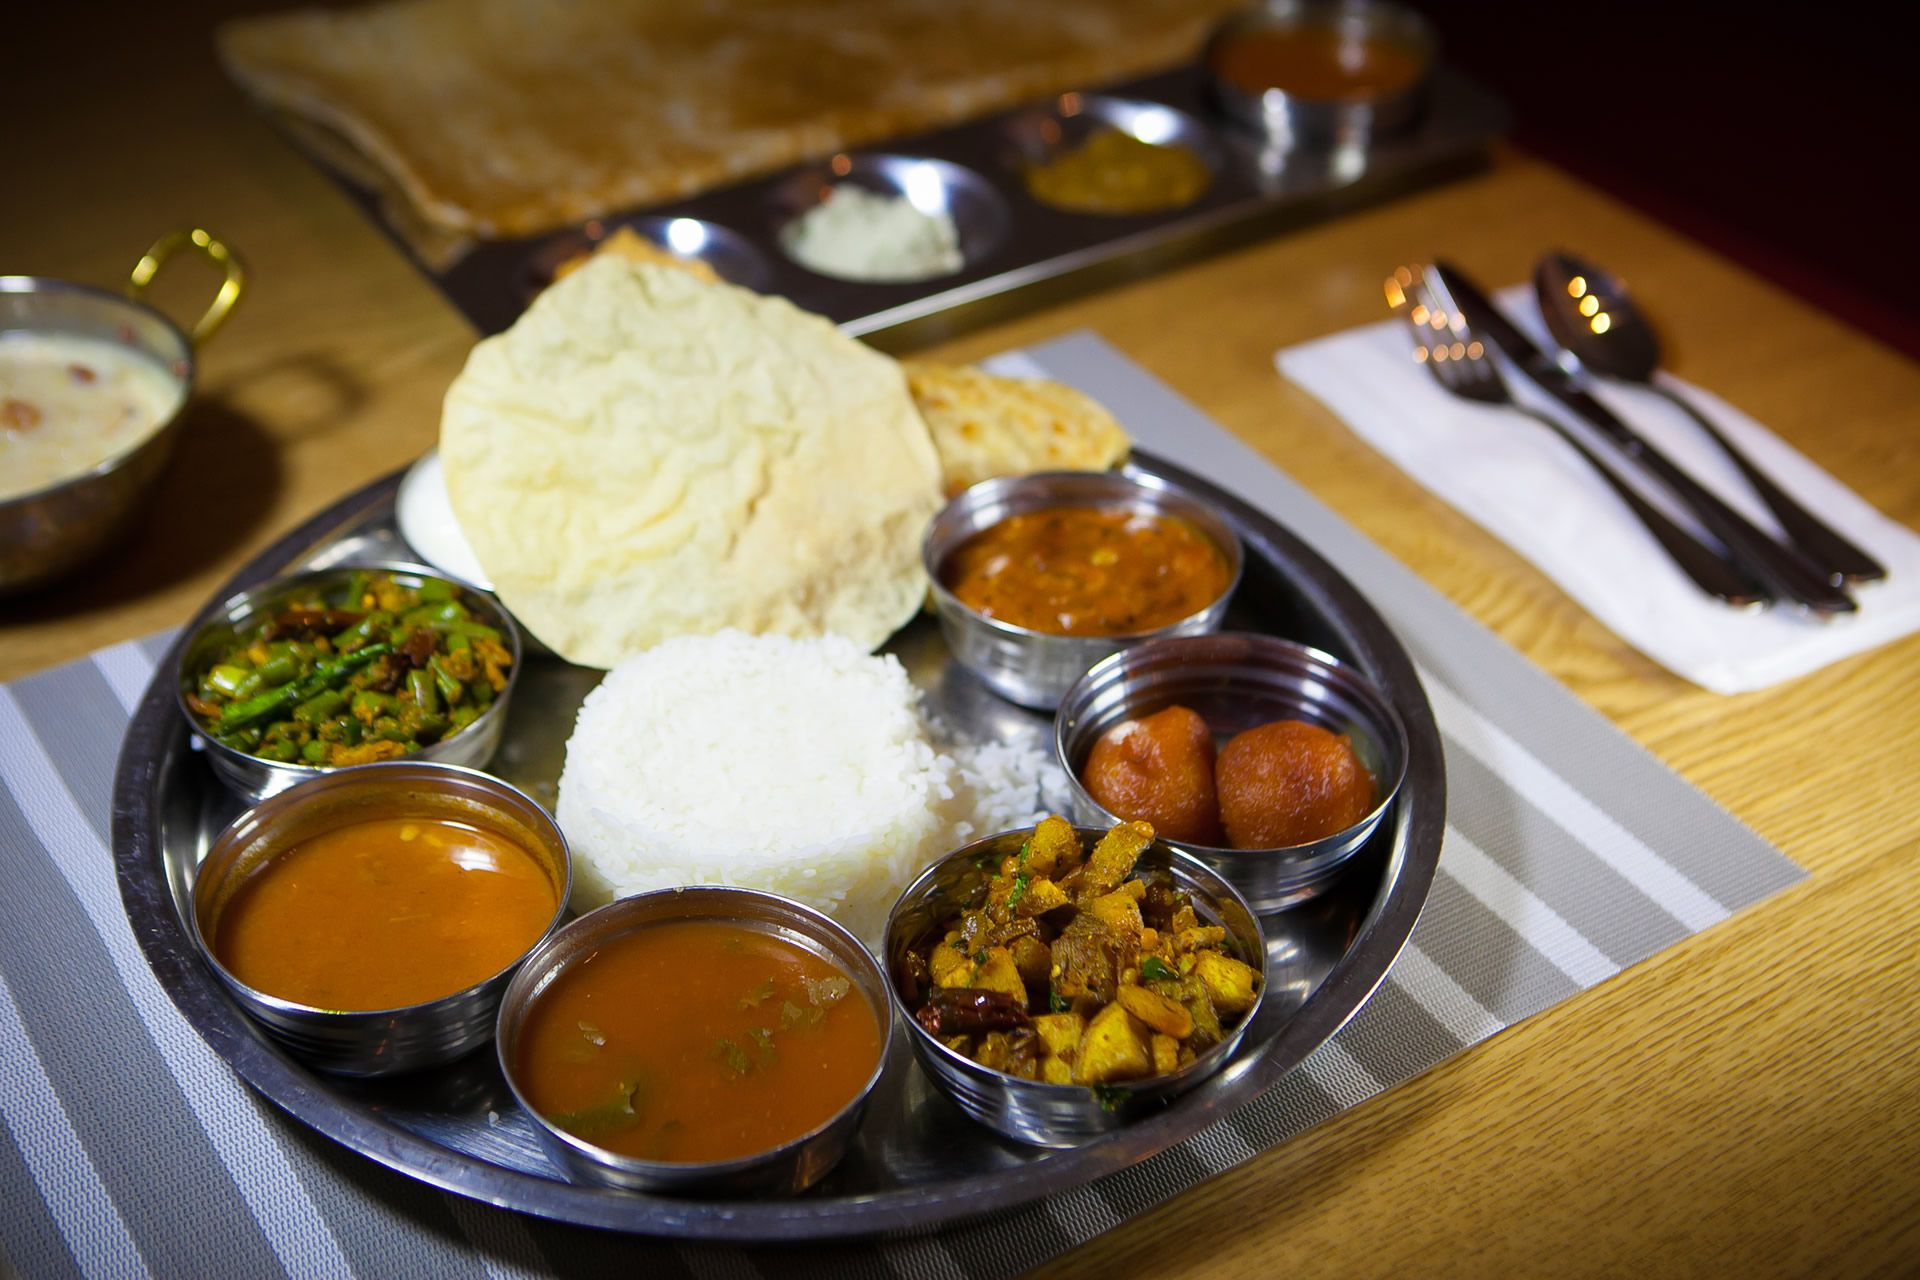 Dosai Indian Vegetarian Cuisine Kosher Nyc South Restaurant New York City S Best Dosa